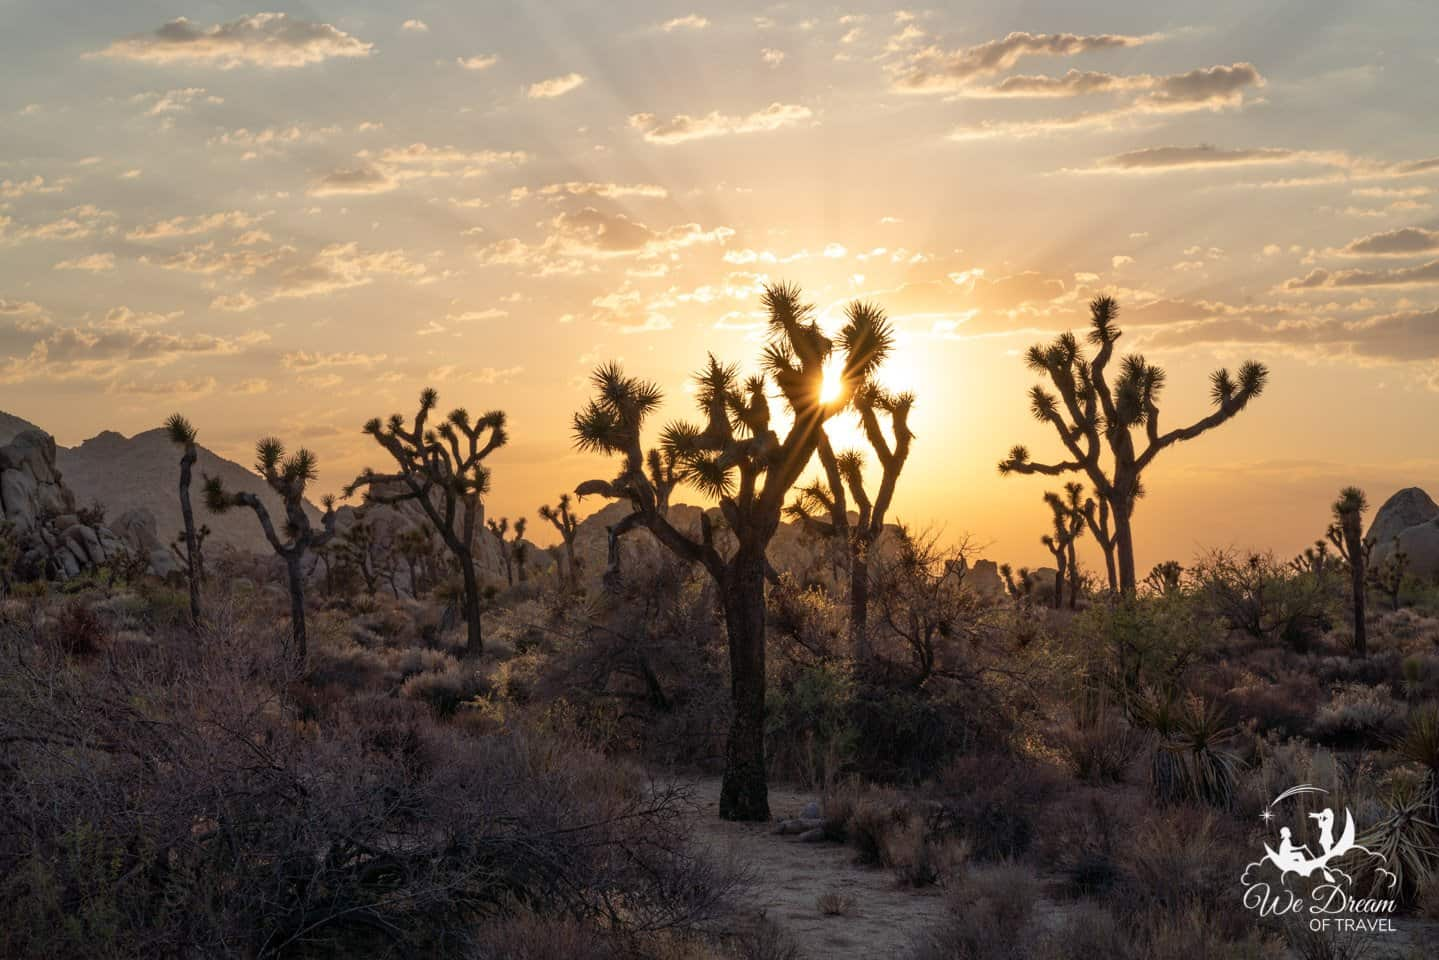 Capturing the golden light of sunset as it passes through the Joshua Trees.